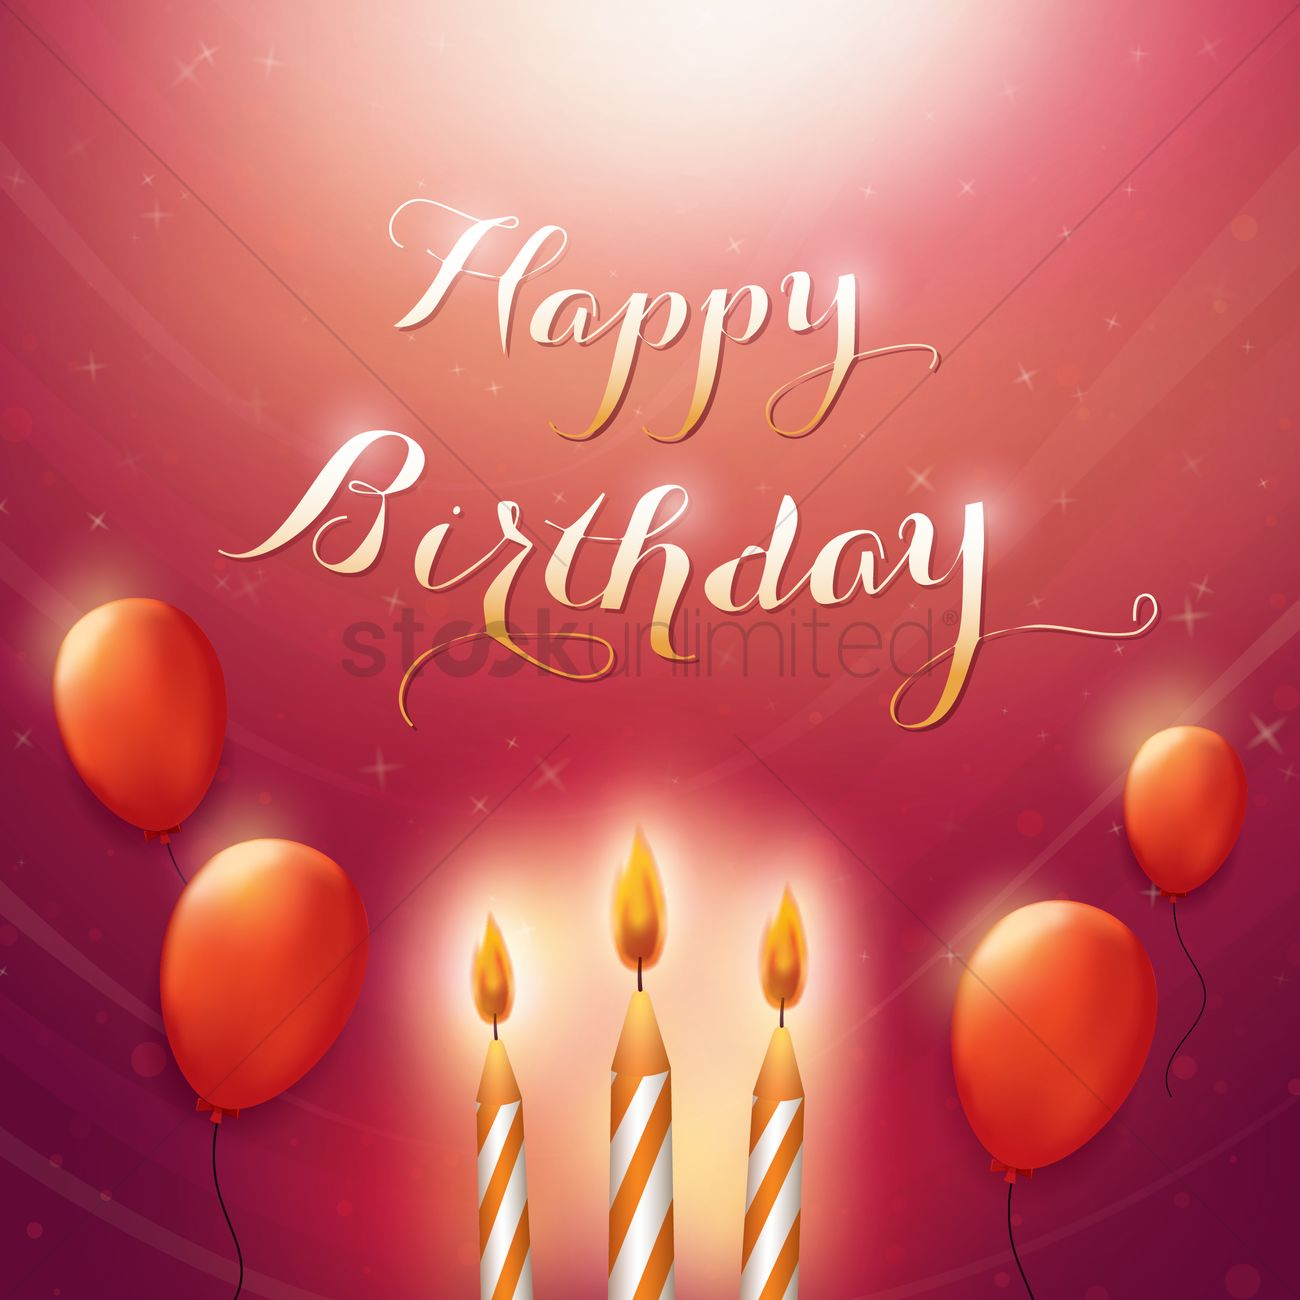 Happy Birthday Wallpaper Vector Image 1819974 Stockunlimited